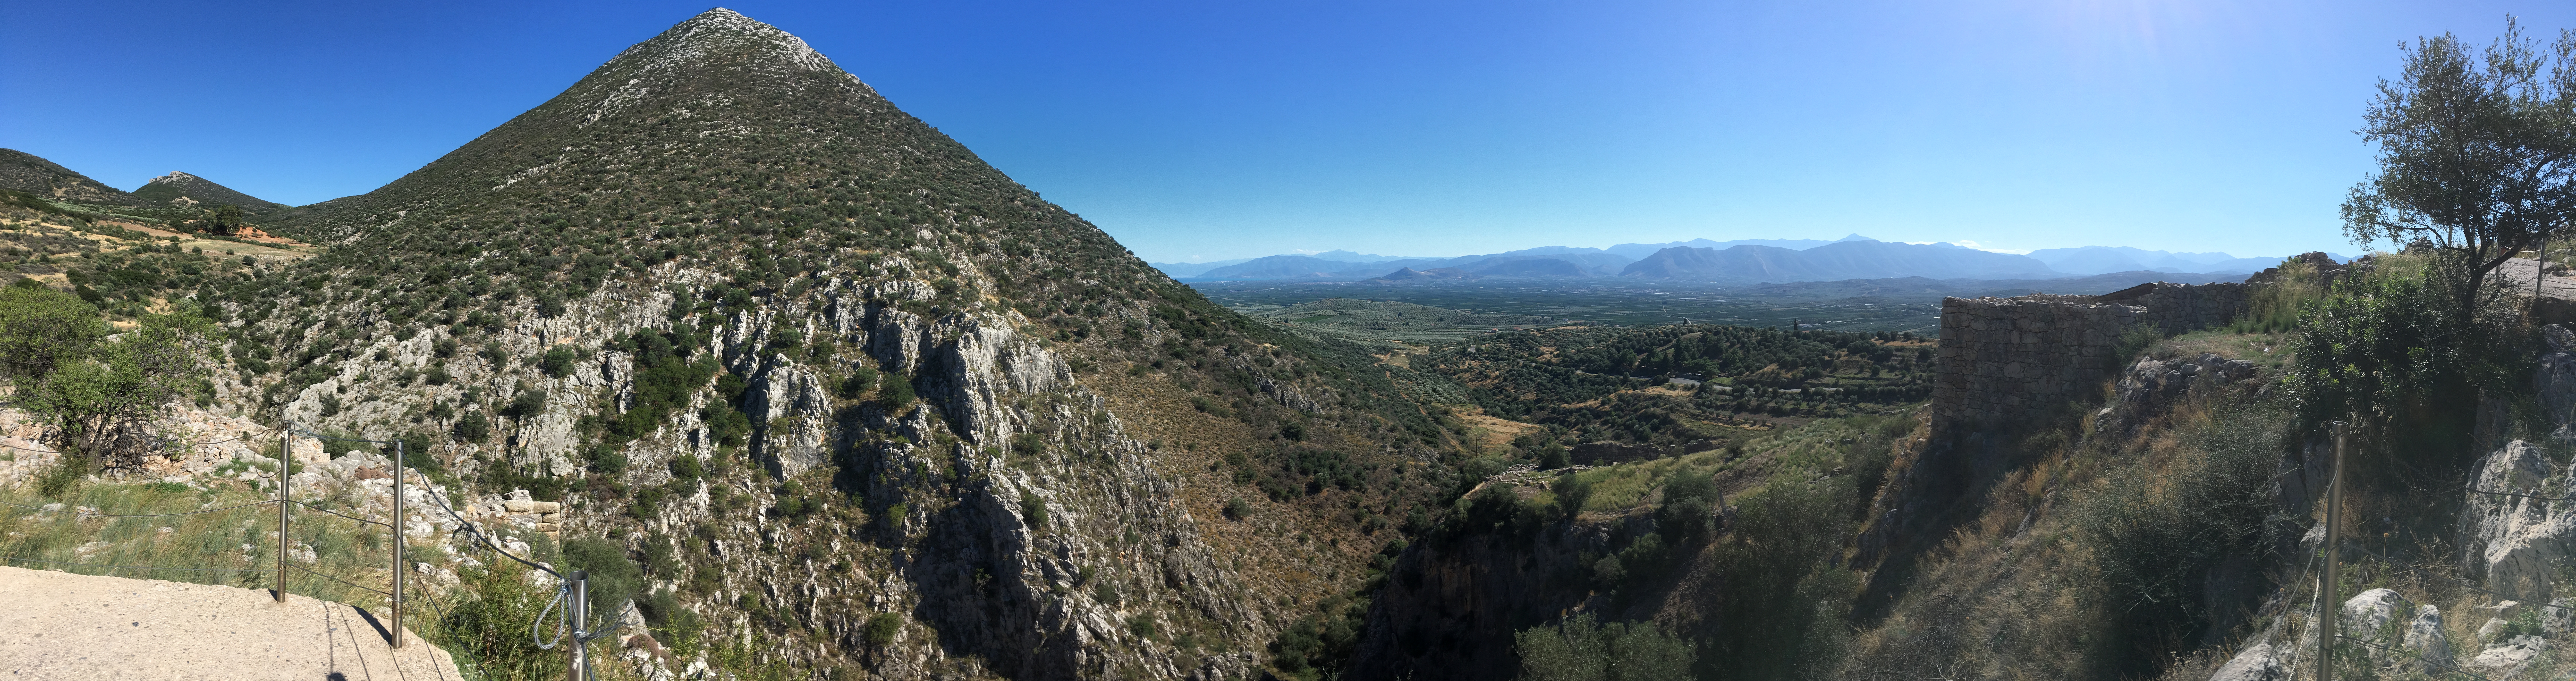 Breathtaking view from the acropolis of Ancient Mycenae.